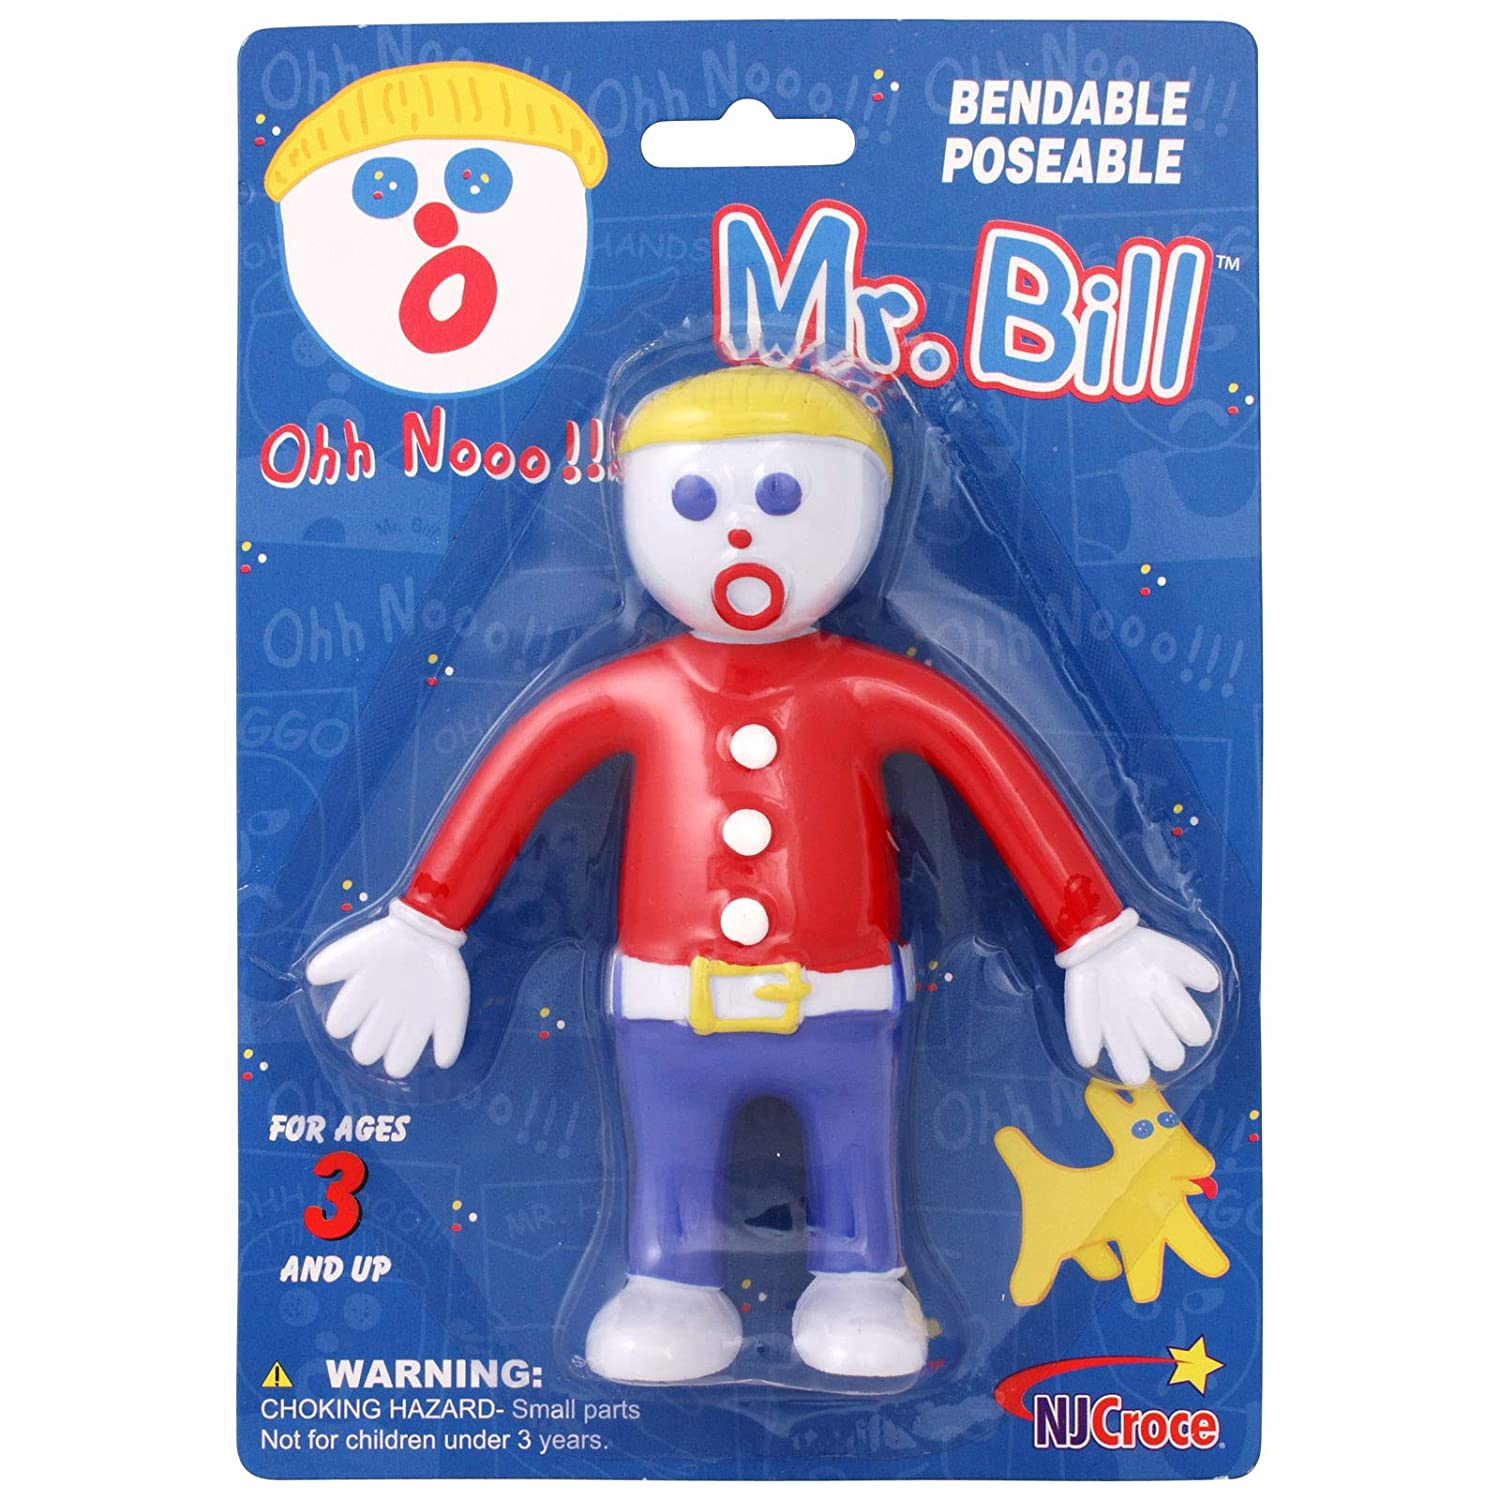 NJ Croce Mr Toys MRB 2600 Accessory Toys /& Games Multicolor NJ Croce Bill Bendable Action Figure